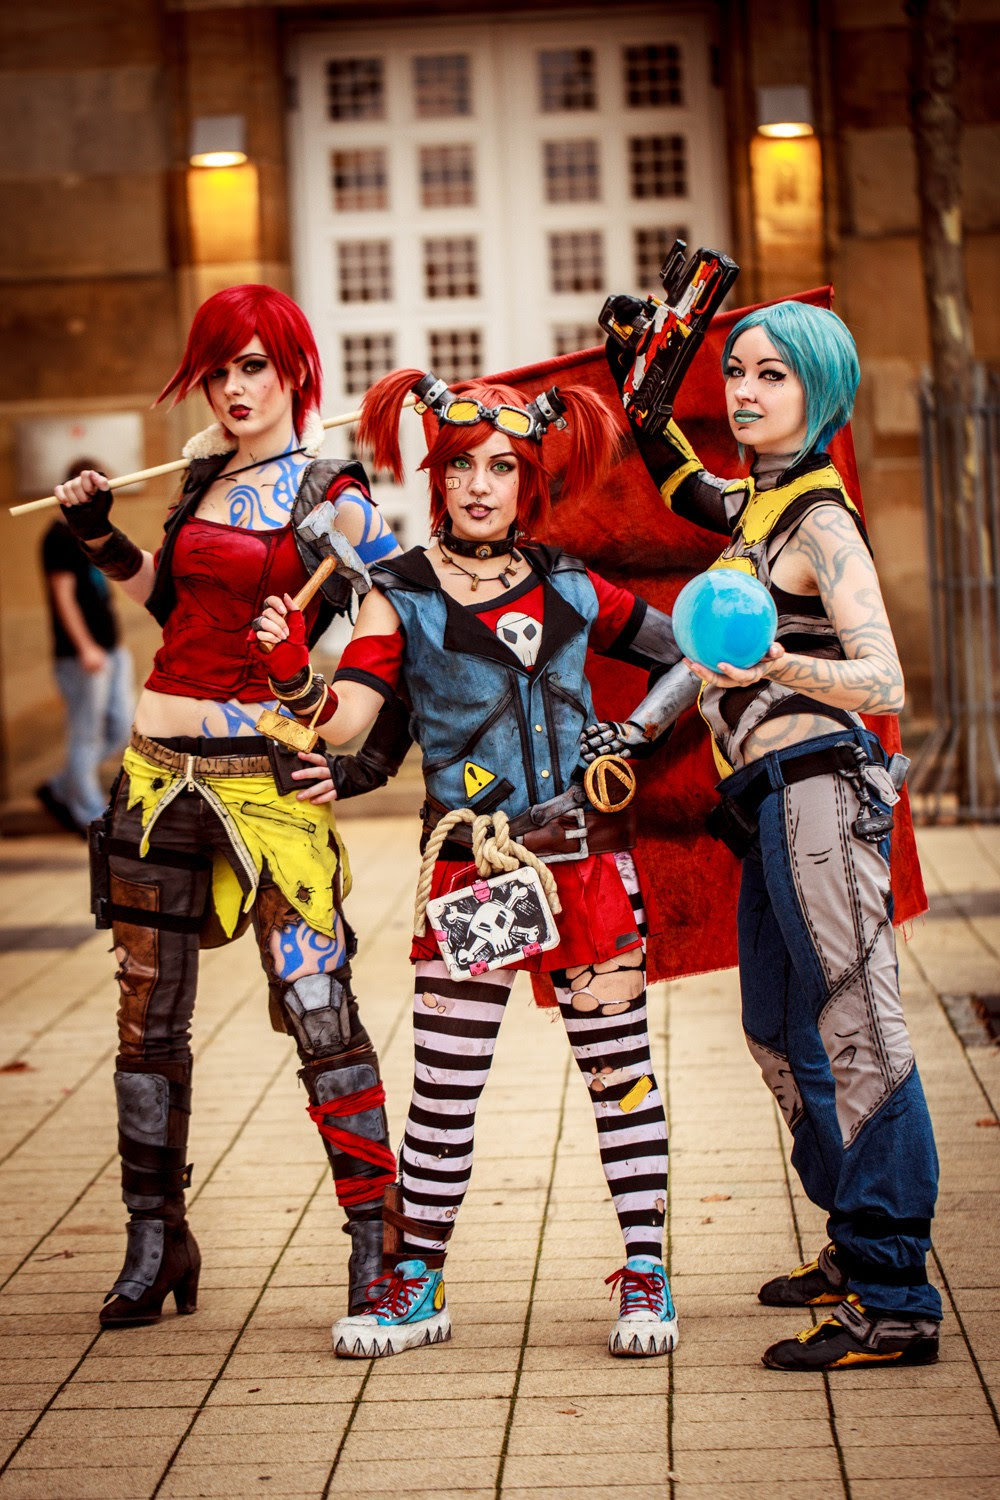 badasses___borderlands_2__by_na0i-d6mifab